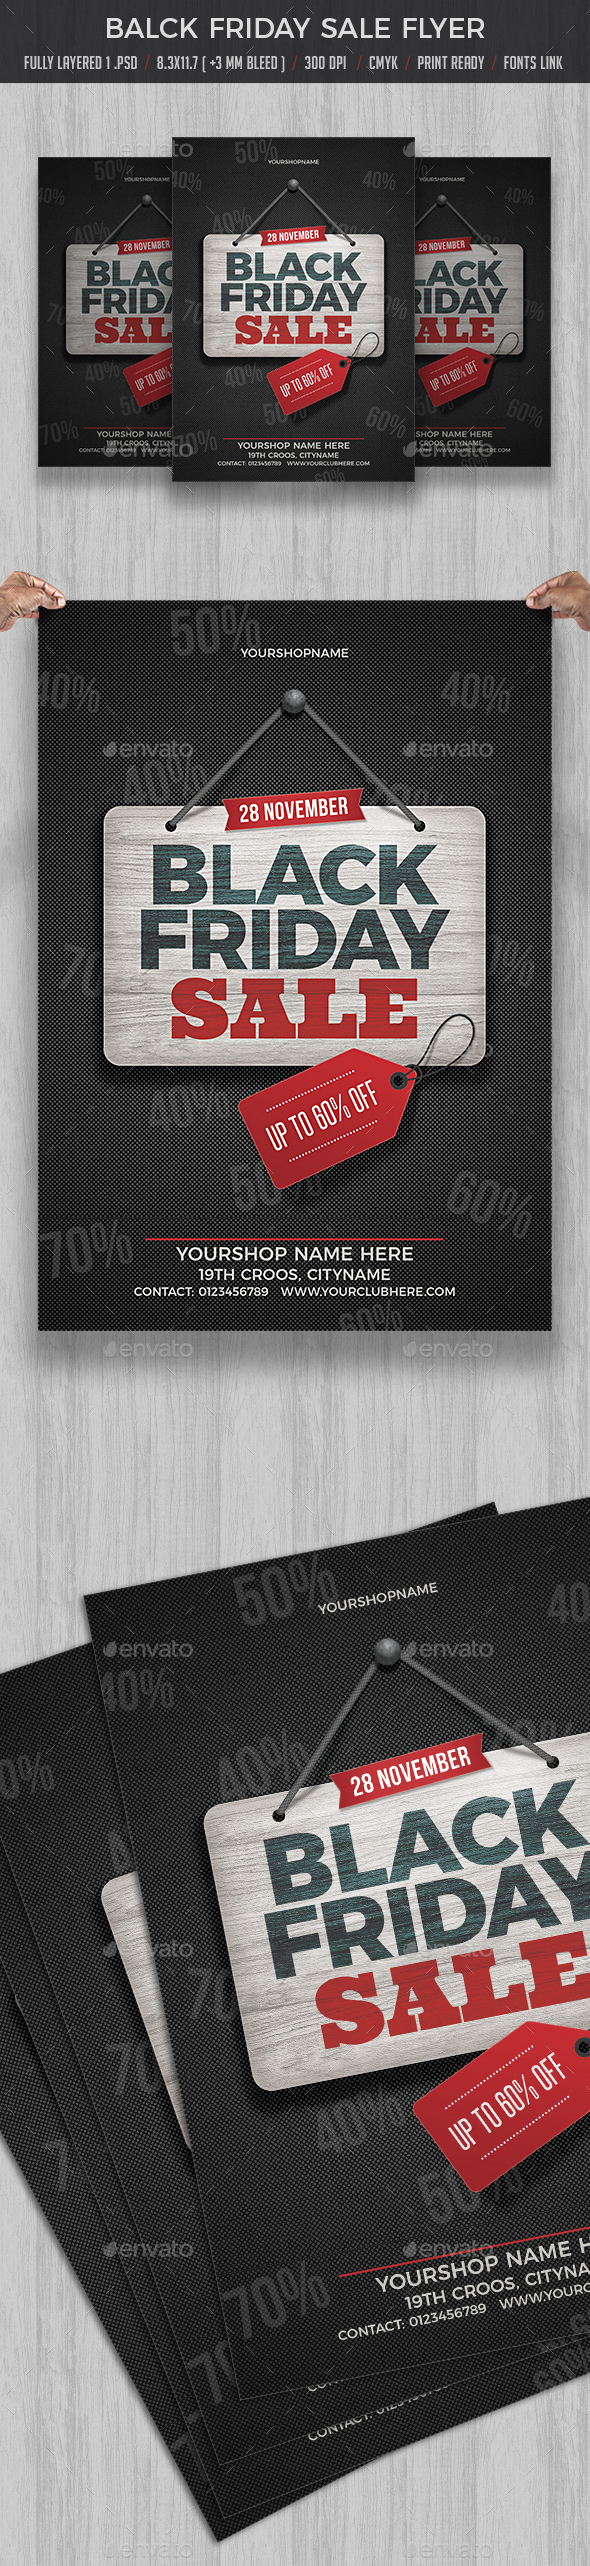 Black Friday Sale - Flyers Print Templates